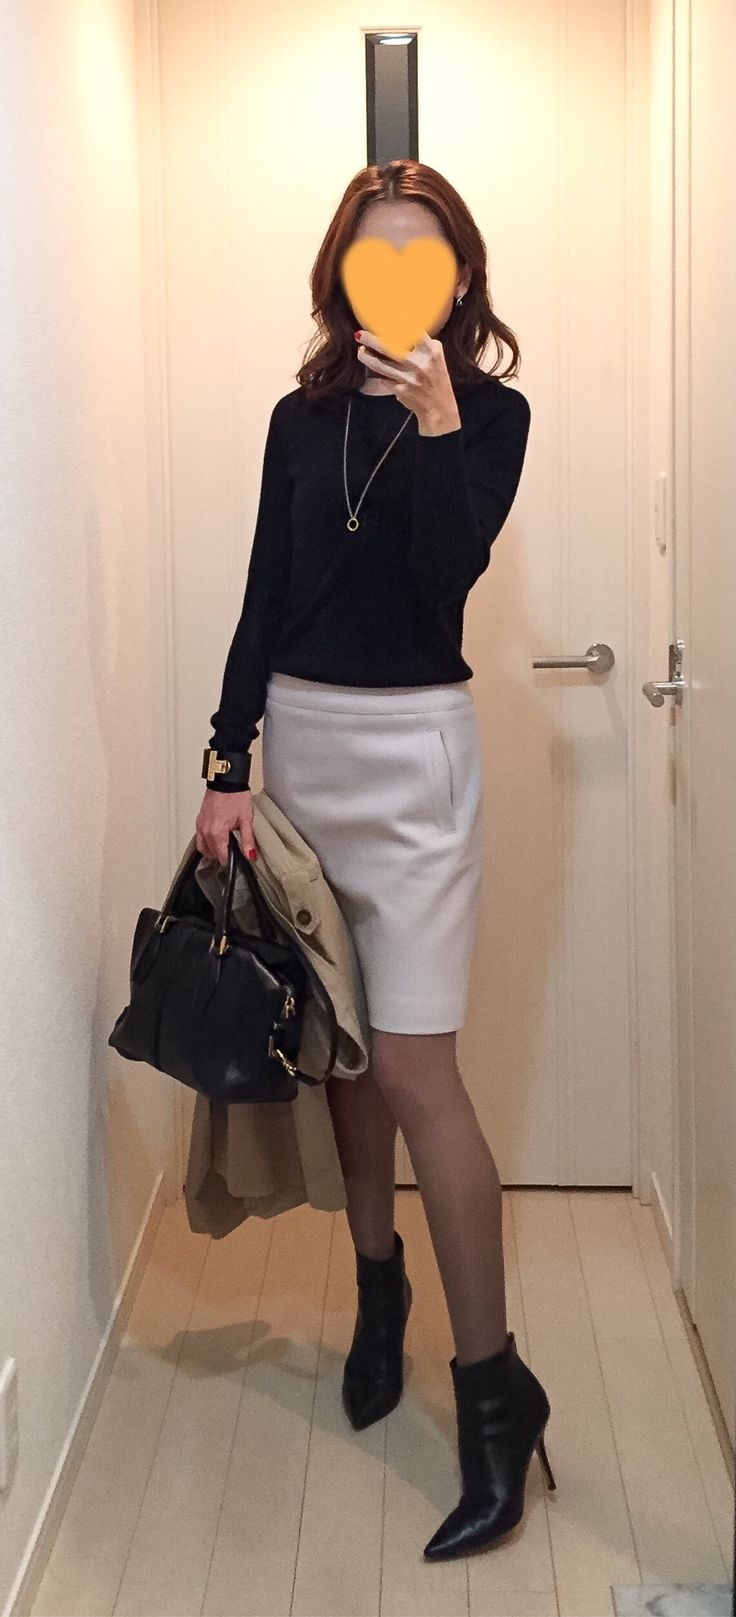 Black knit: Drawer, Light grey skirt: Ballsey, Bag: Tods, Boots: Jimmy Choo